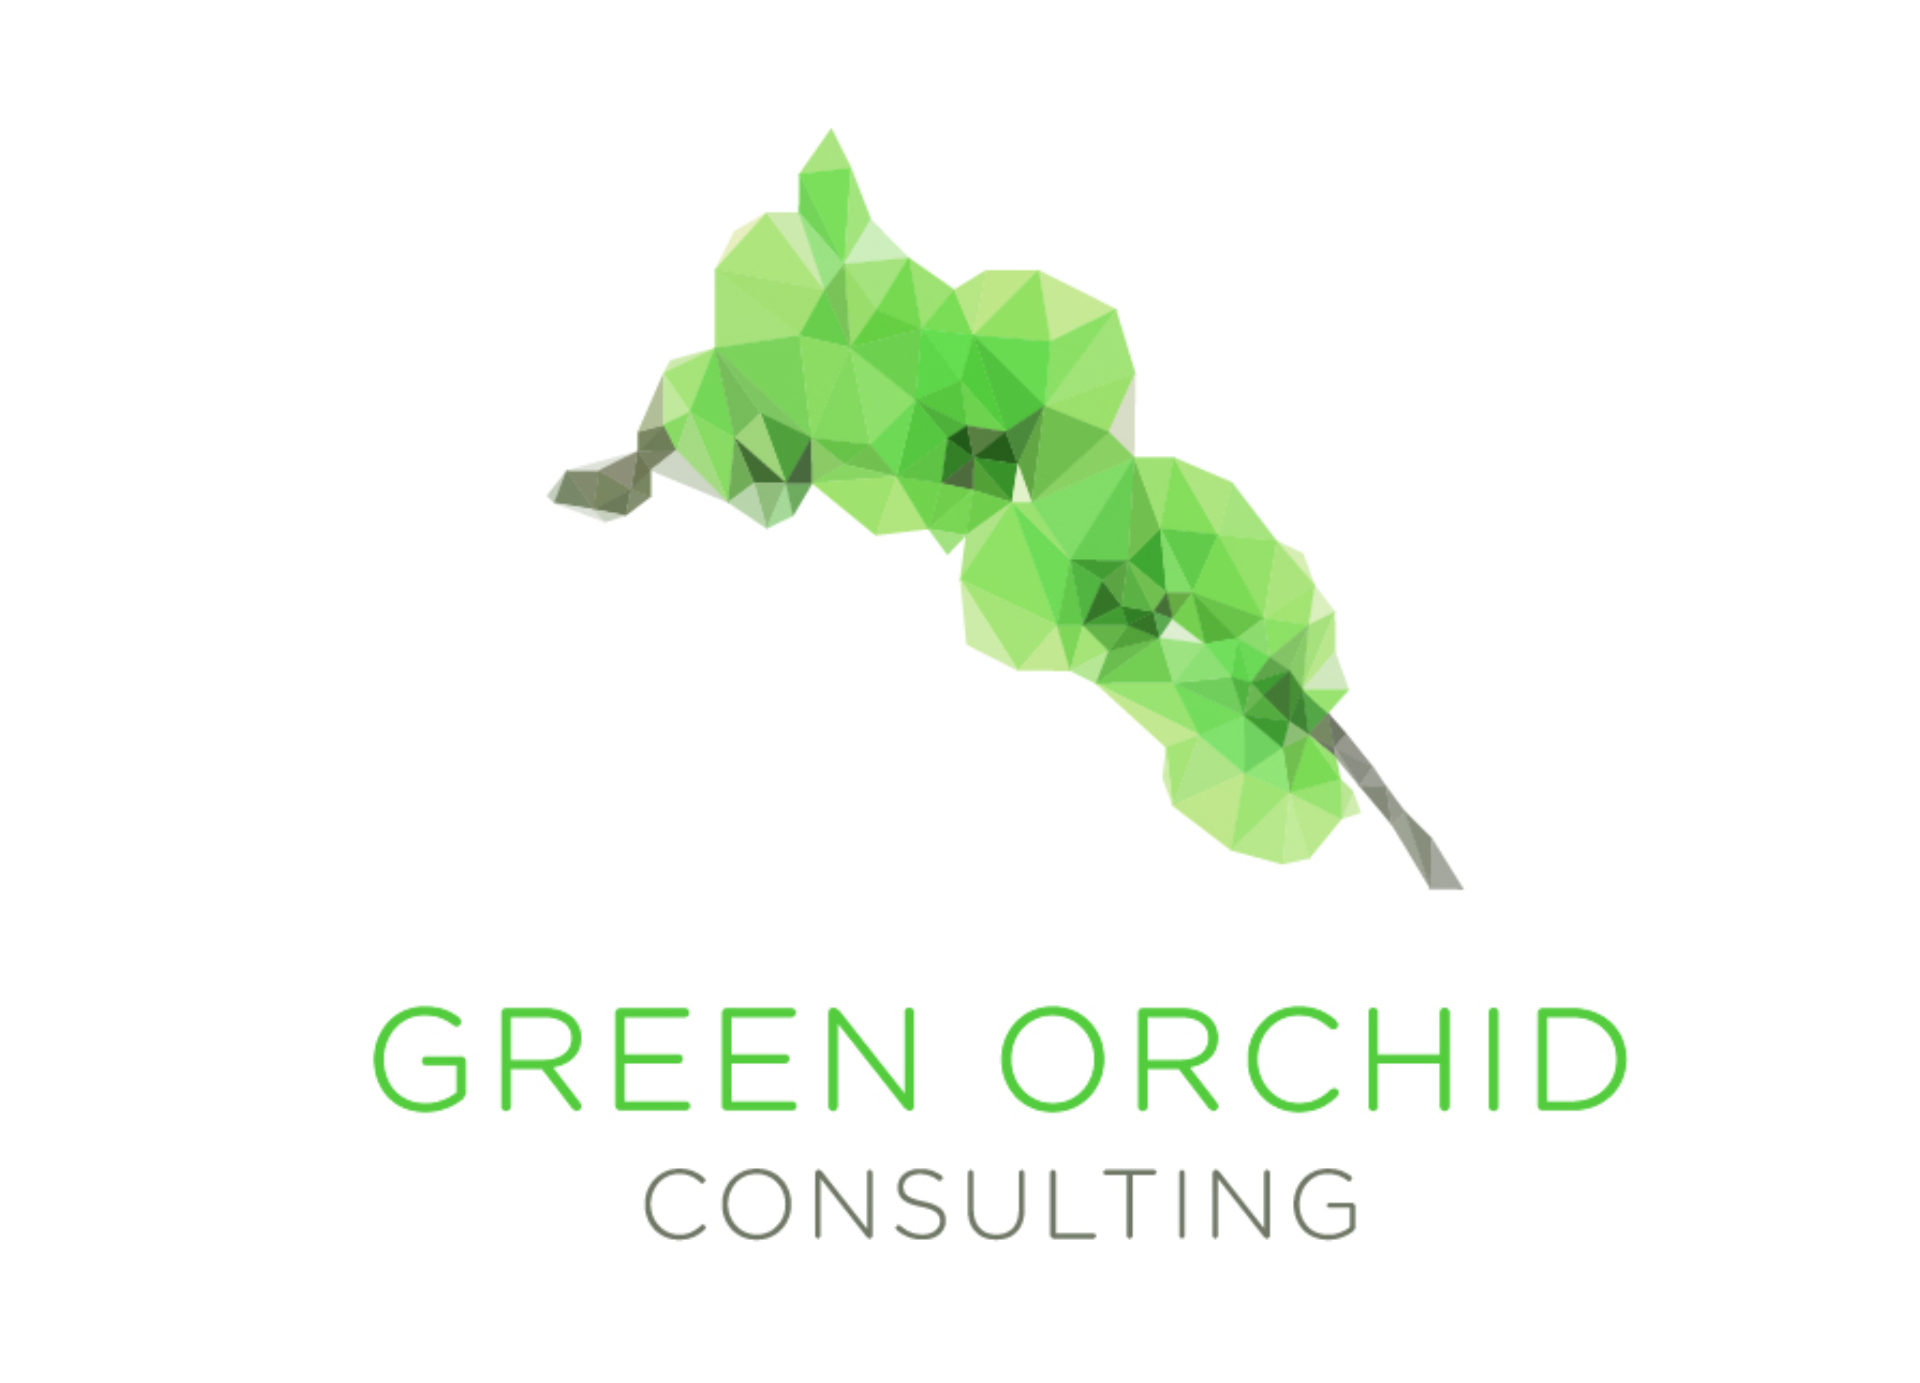 Green Orchid Consulting